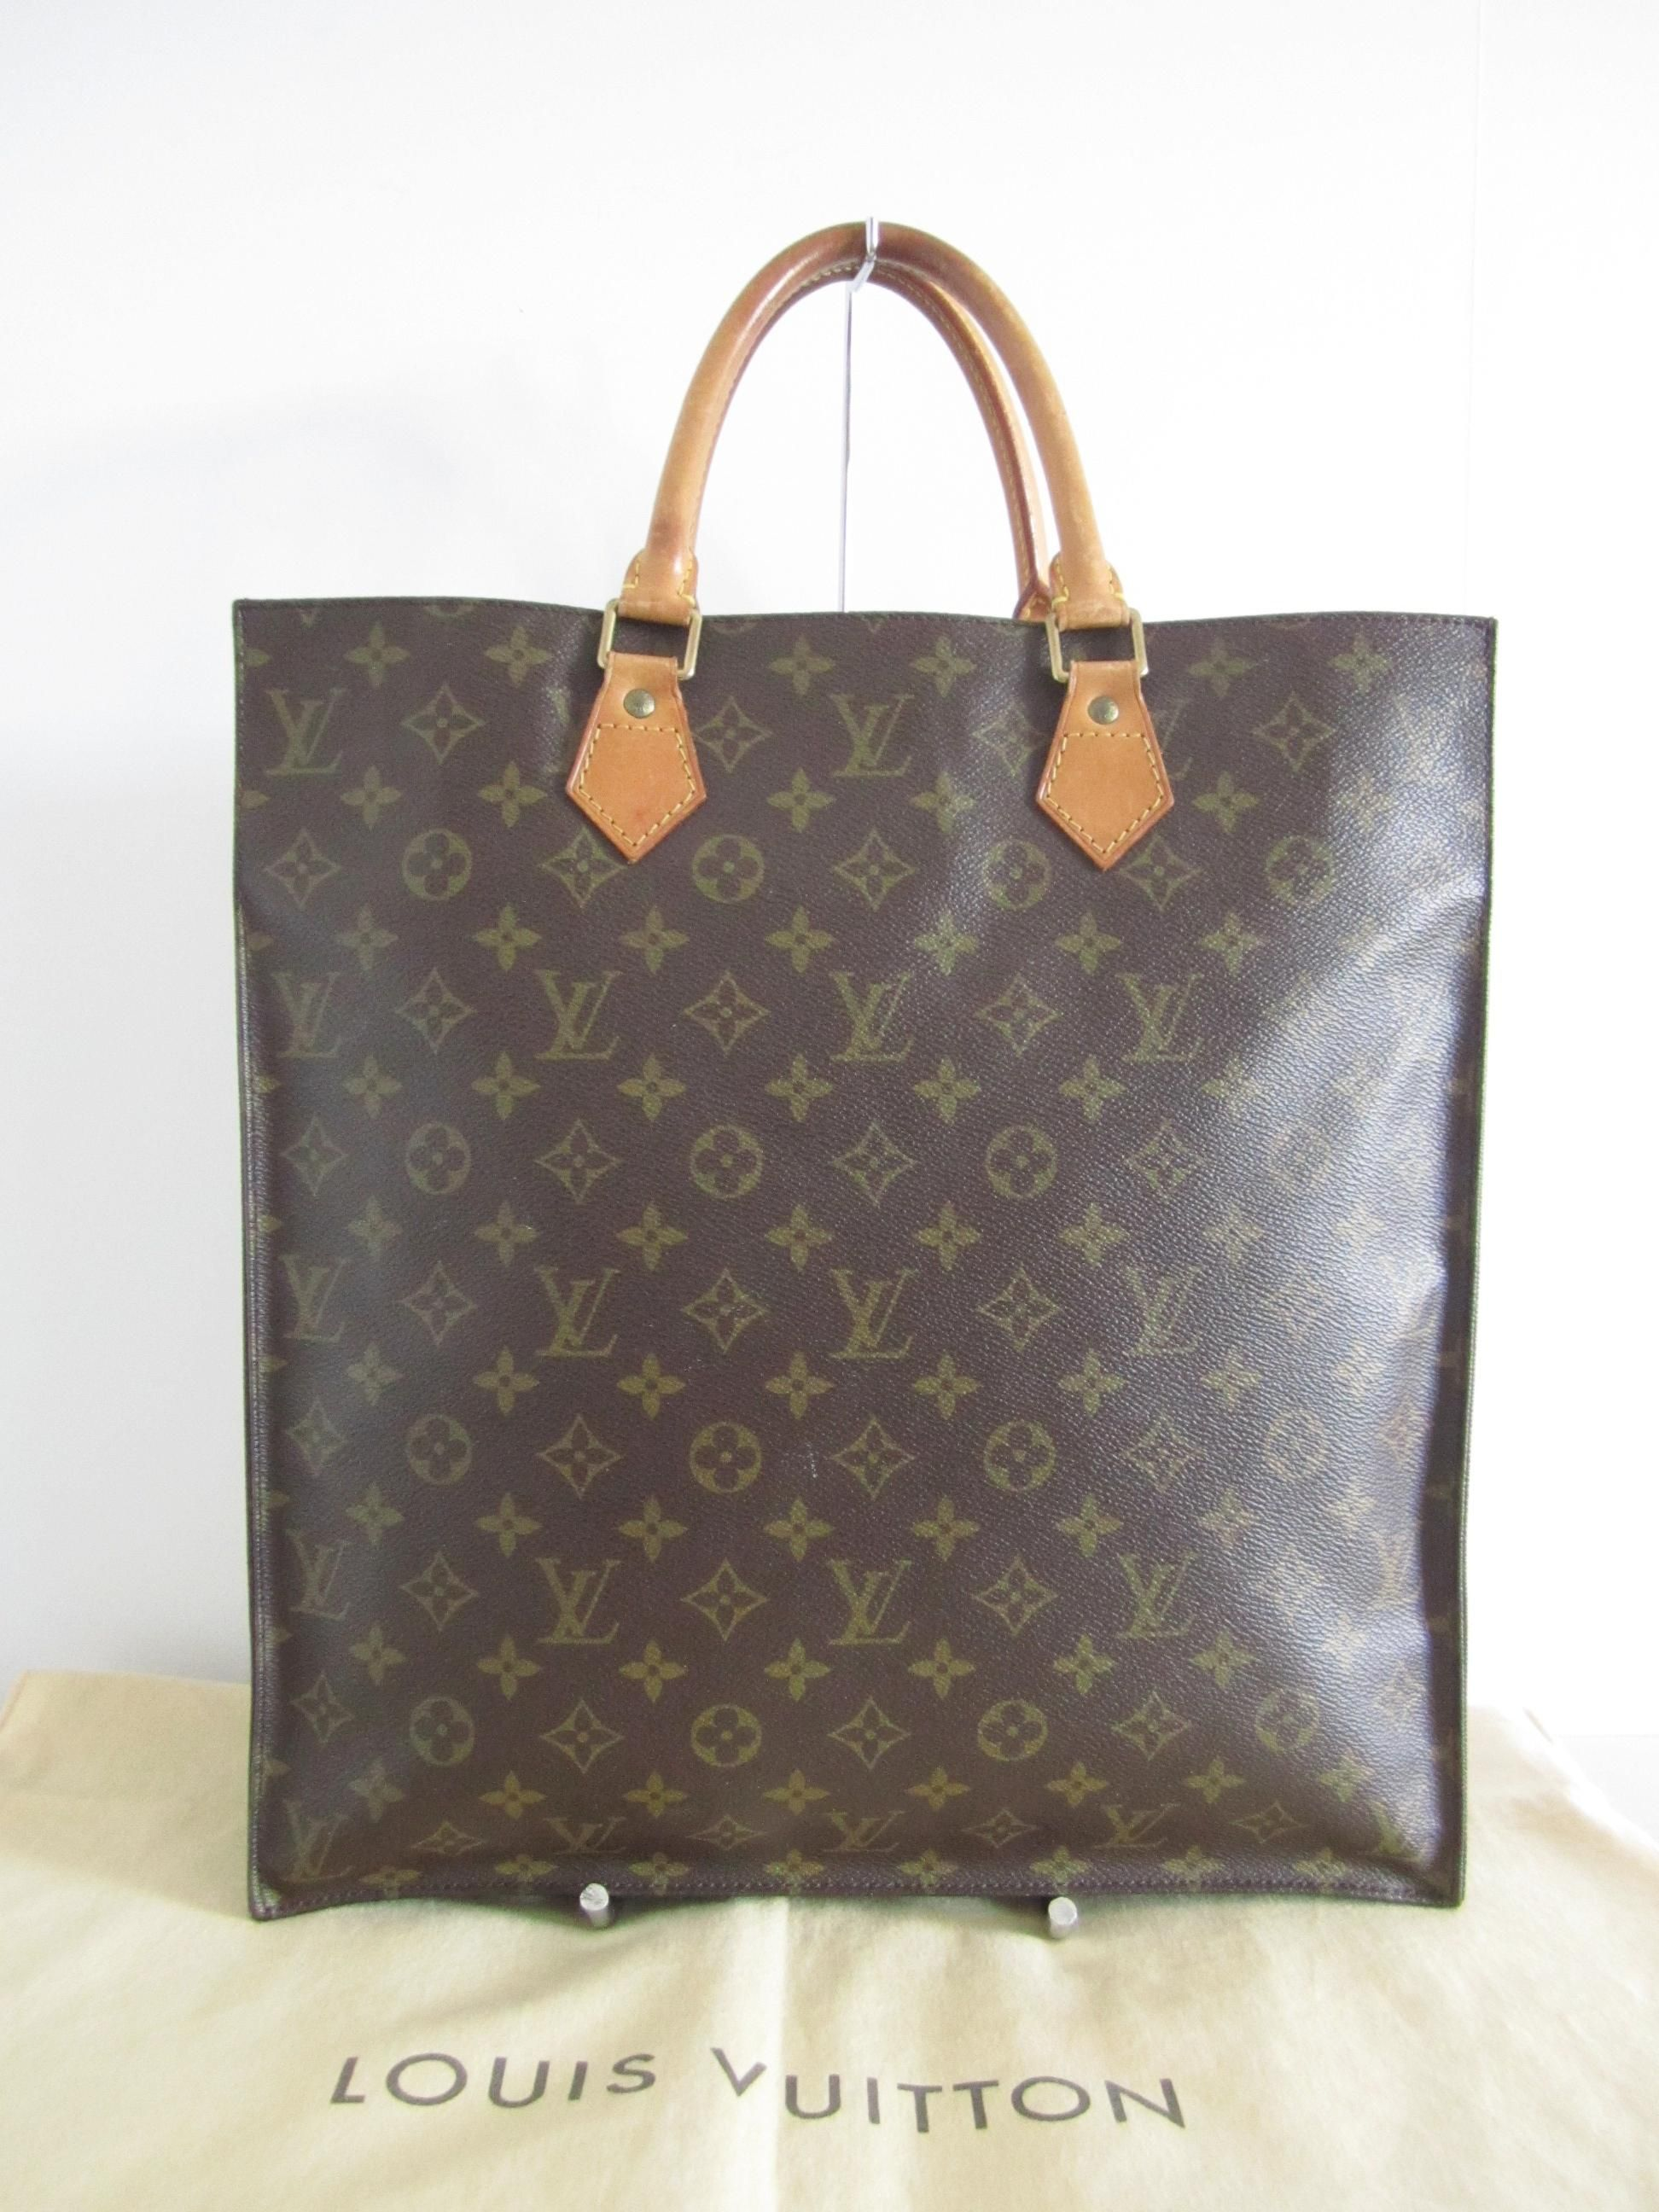 91d554fc201e Louis Vuitton Sac Plat Gm Monogram Tote Bag. Get one of the hottest styles  of the season! The Louis Vuitton Sac Plat Gm Monogram Tote Bag is a top 10  member ...